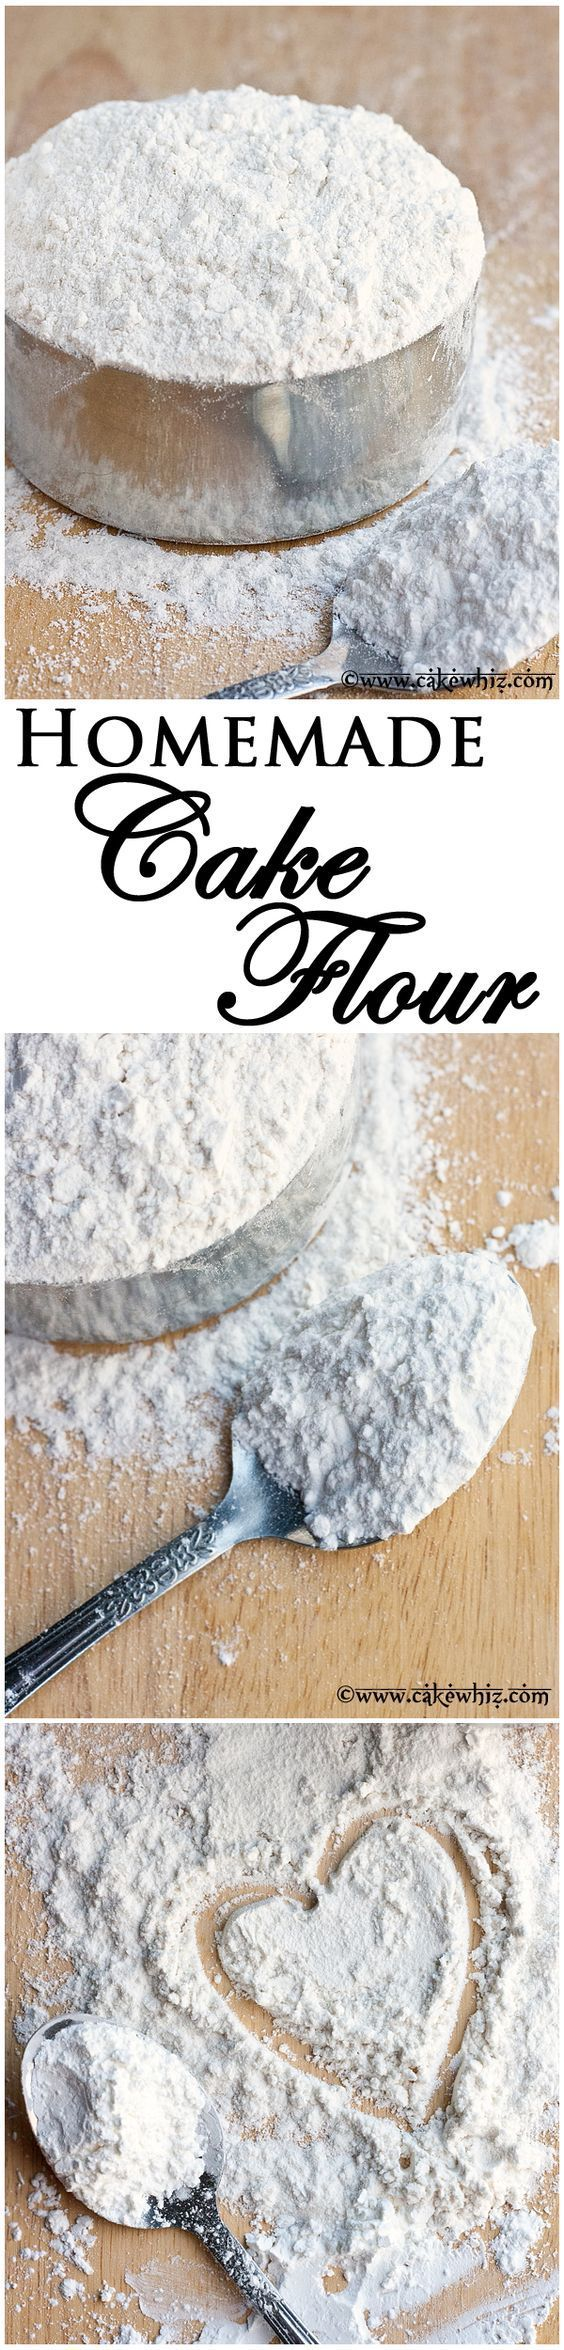 how to make wheat flour at home